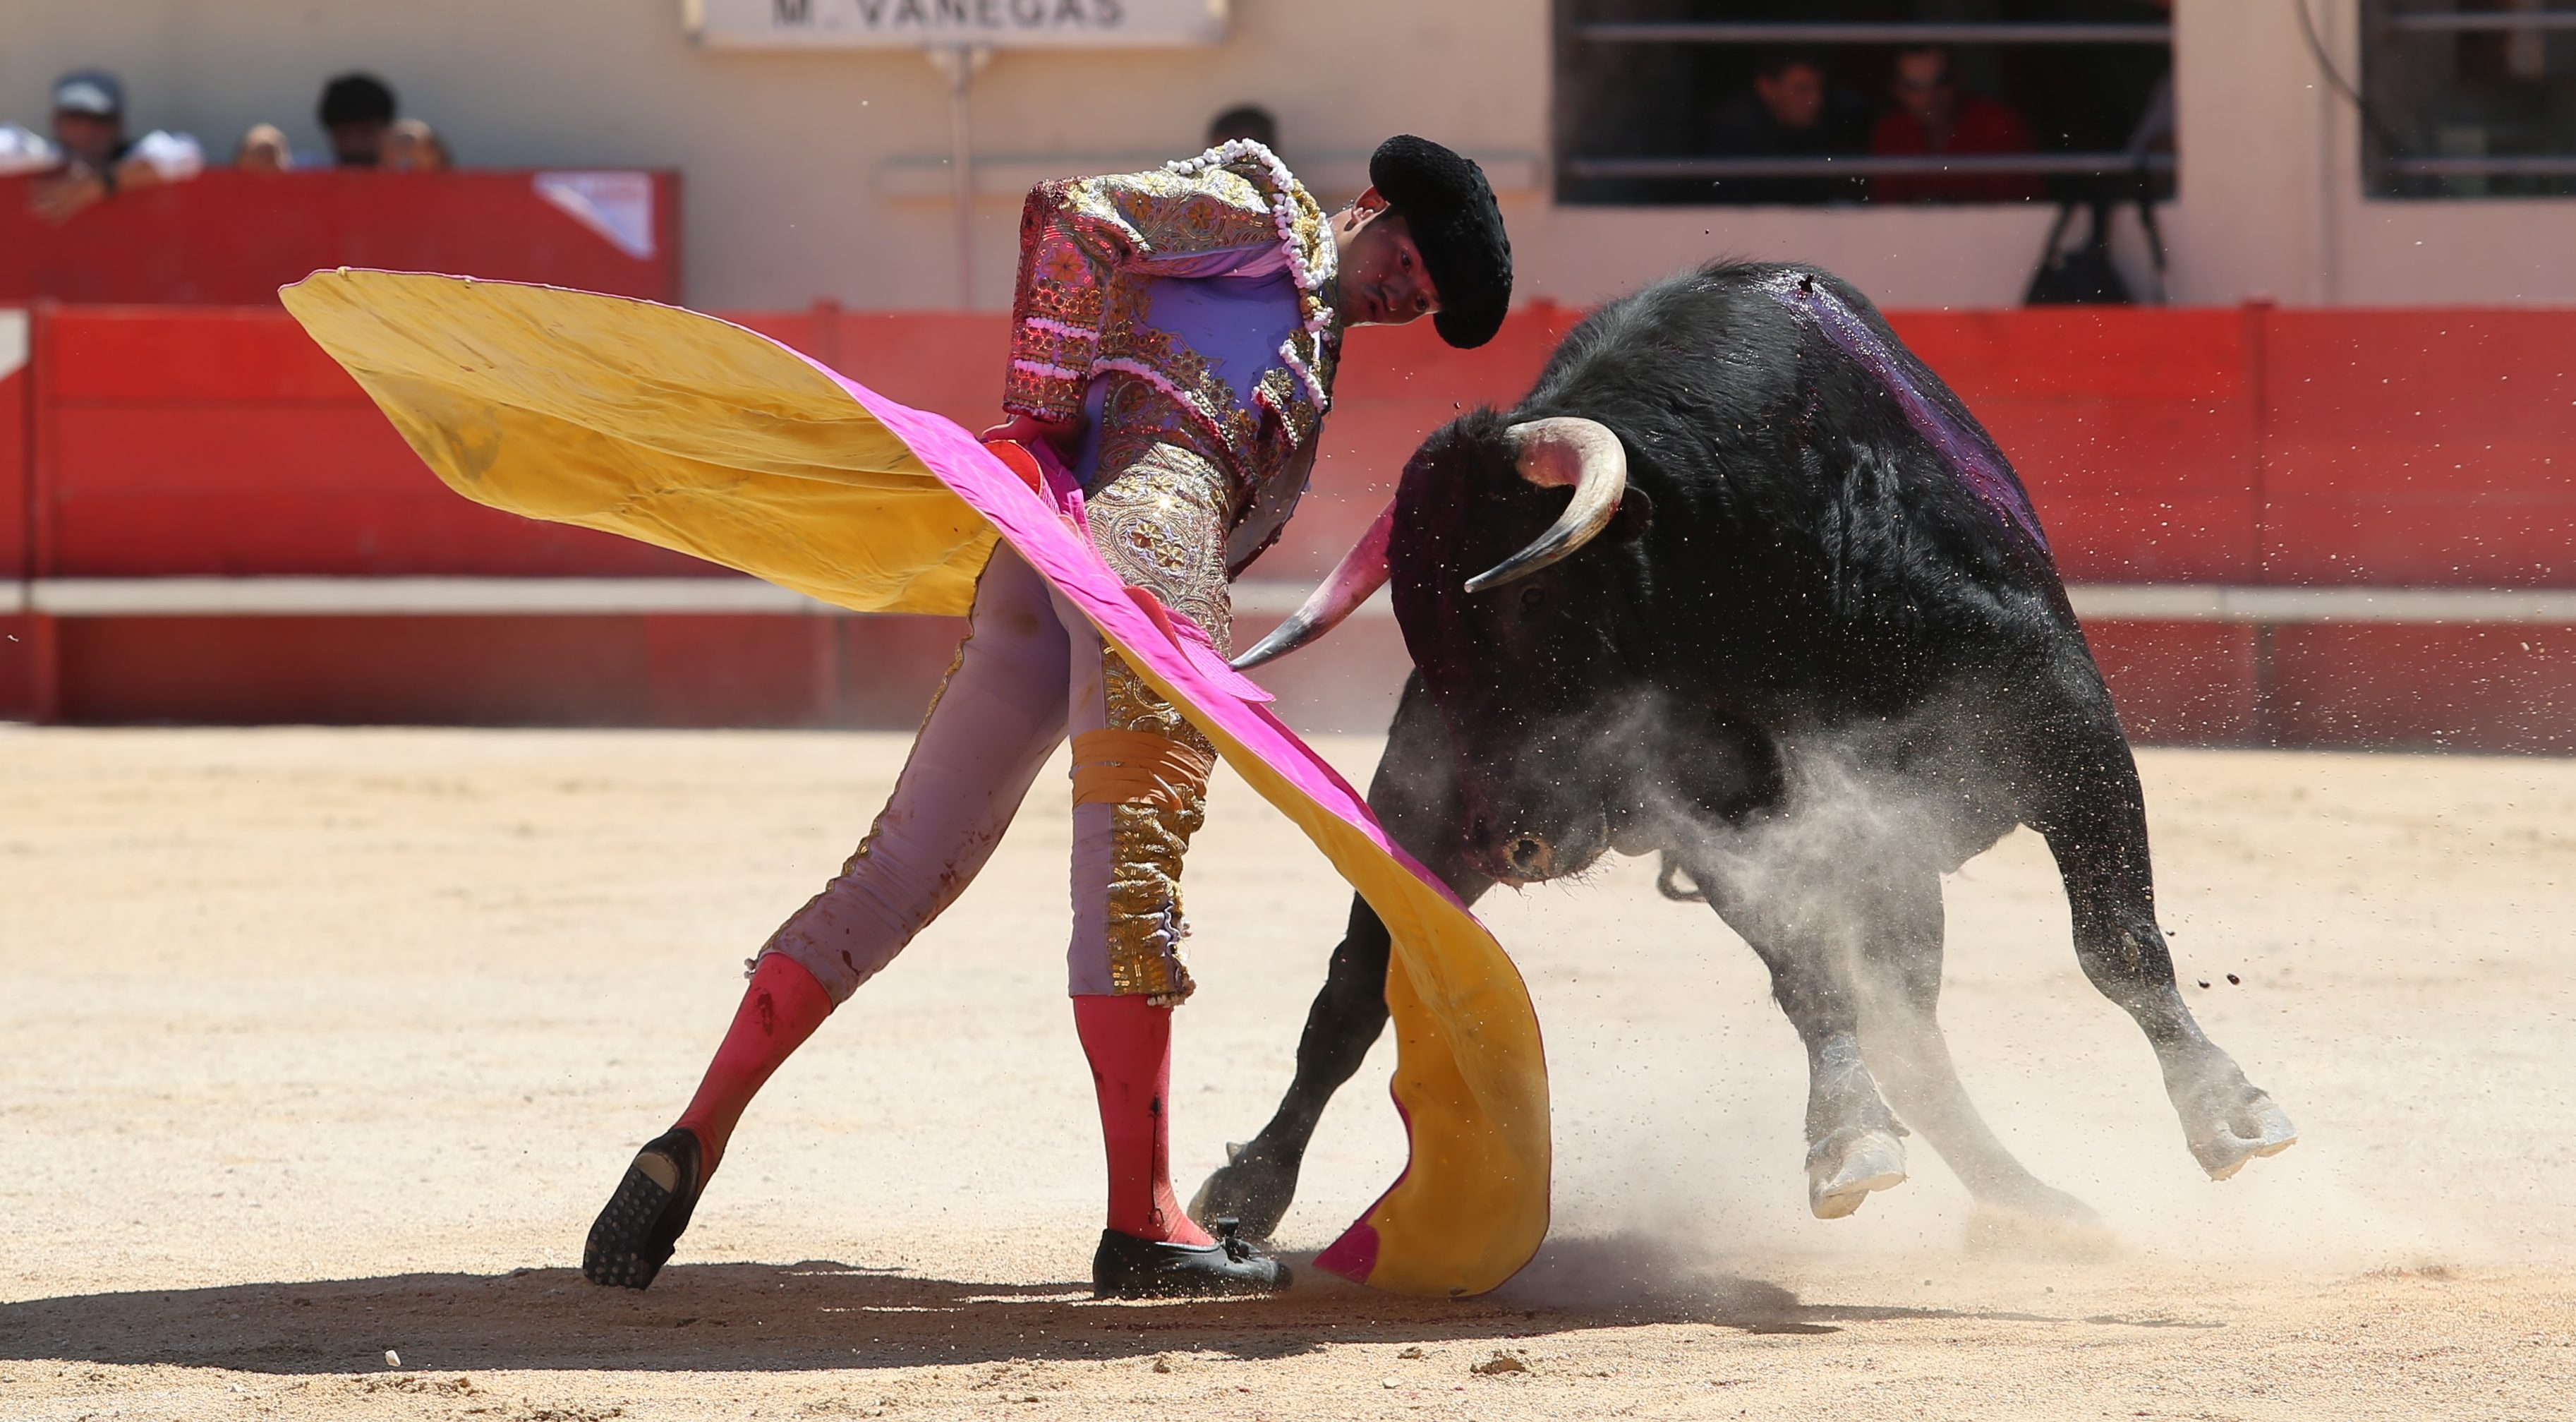 Photo of FERIA D'ALÈS Manolo Vanegas, prêt à devenir matador de toros